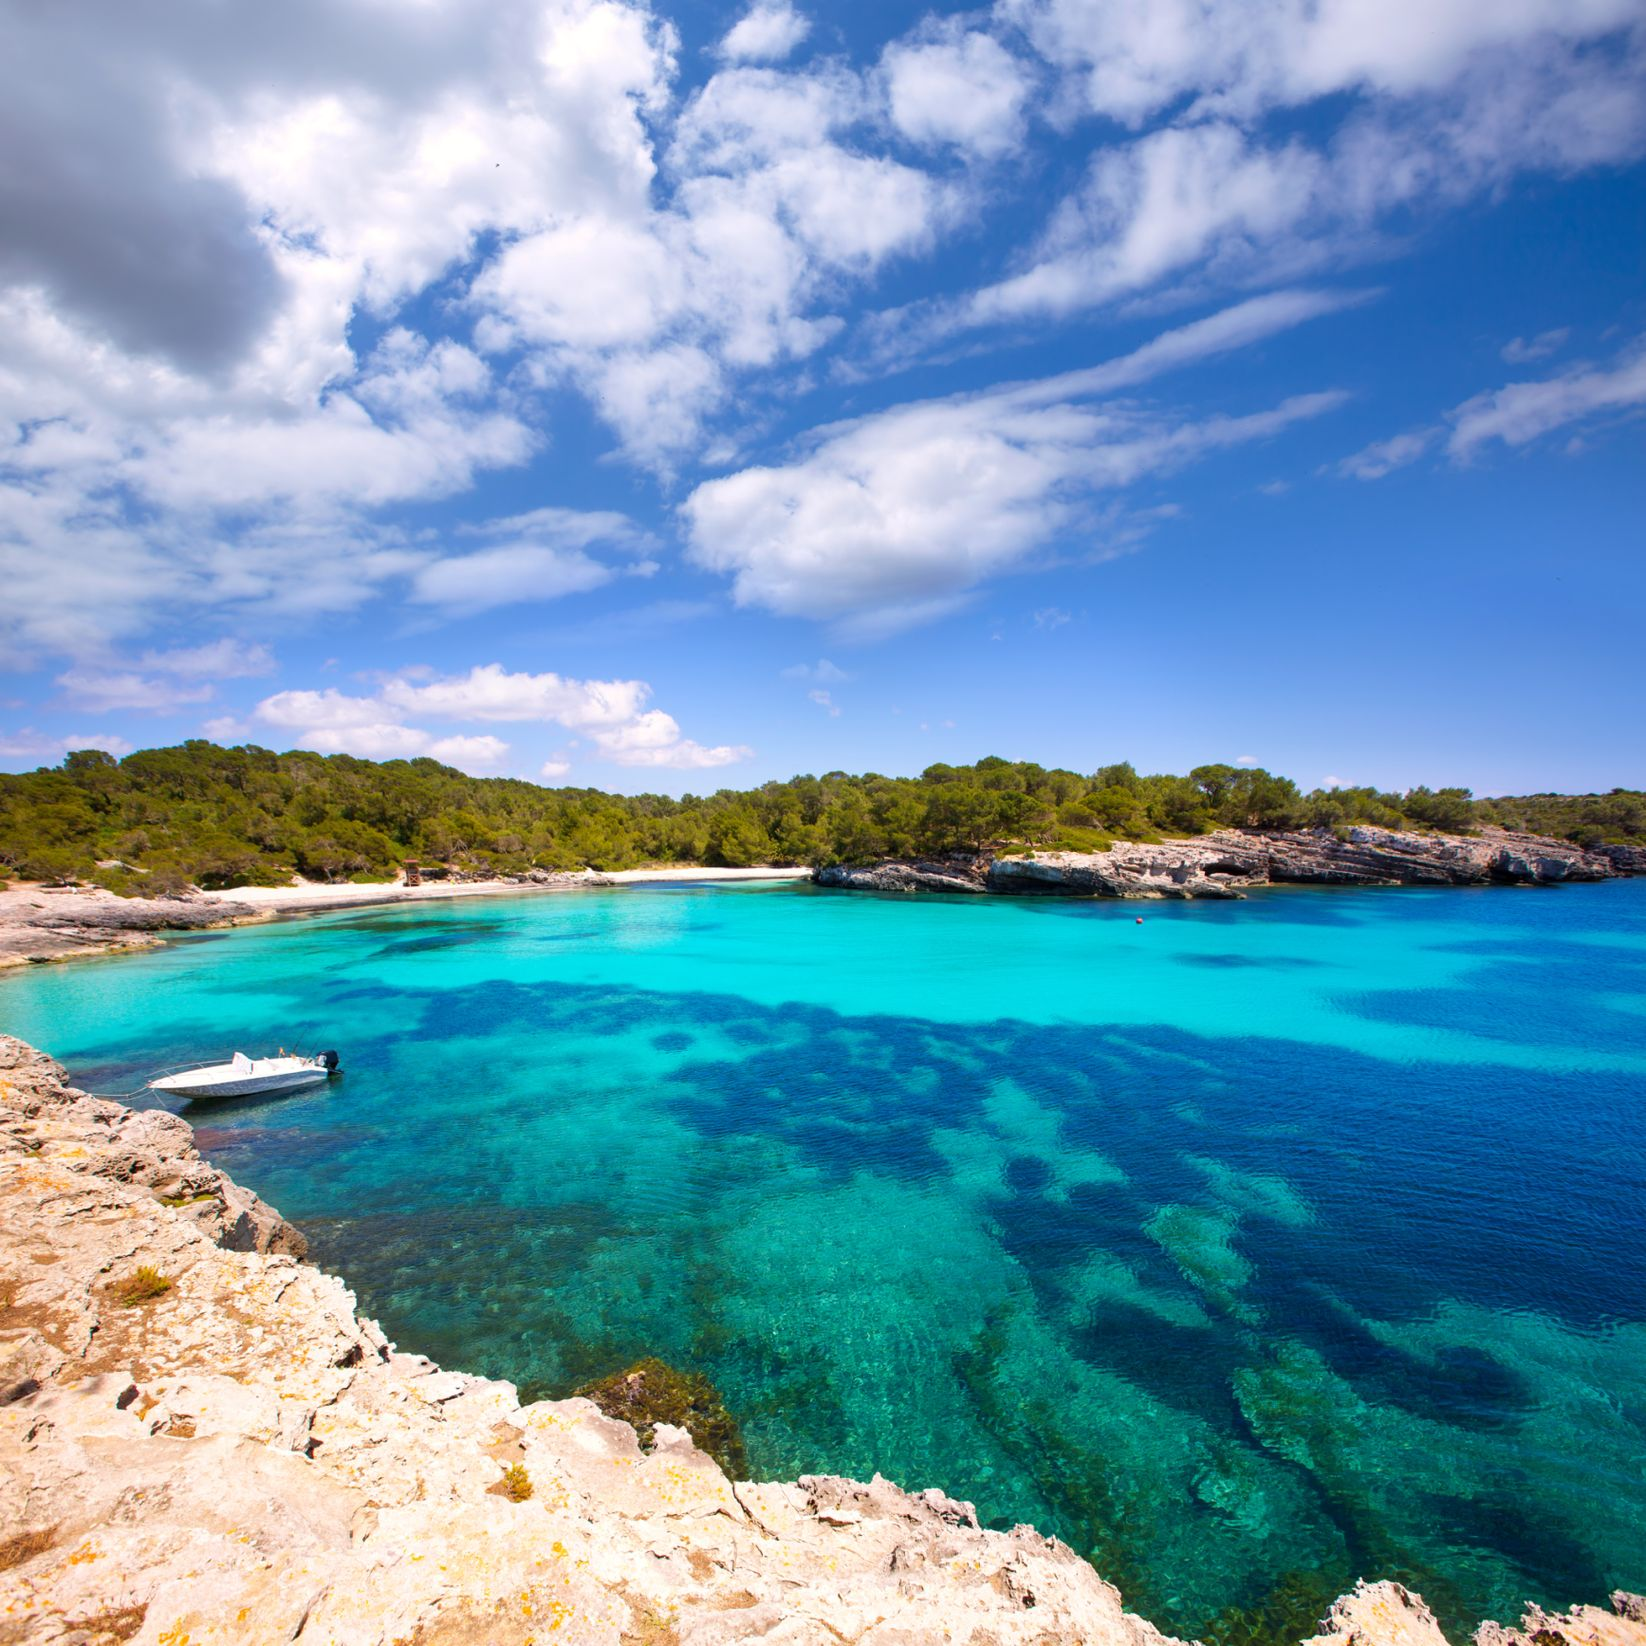 Cala Turqueta beach is one of the most beautiful in Menorca and the Balearic Islands